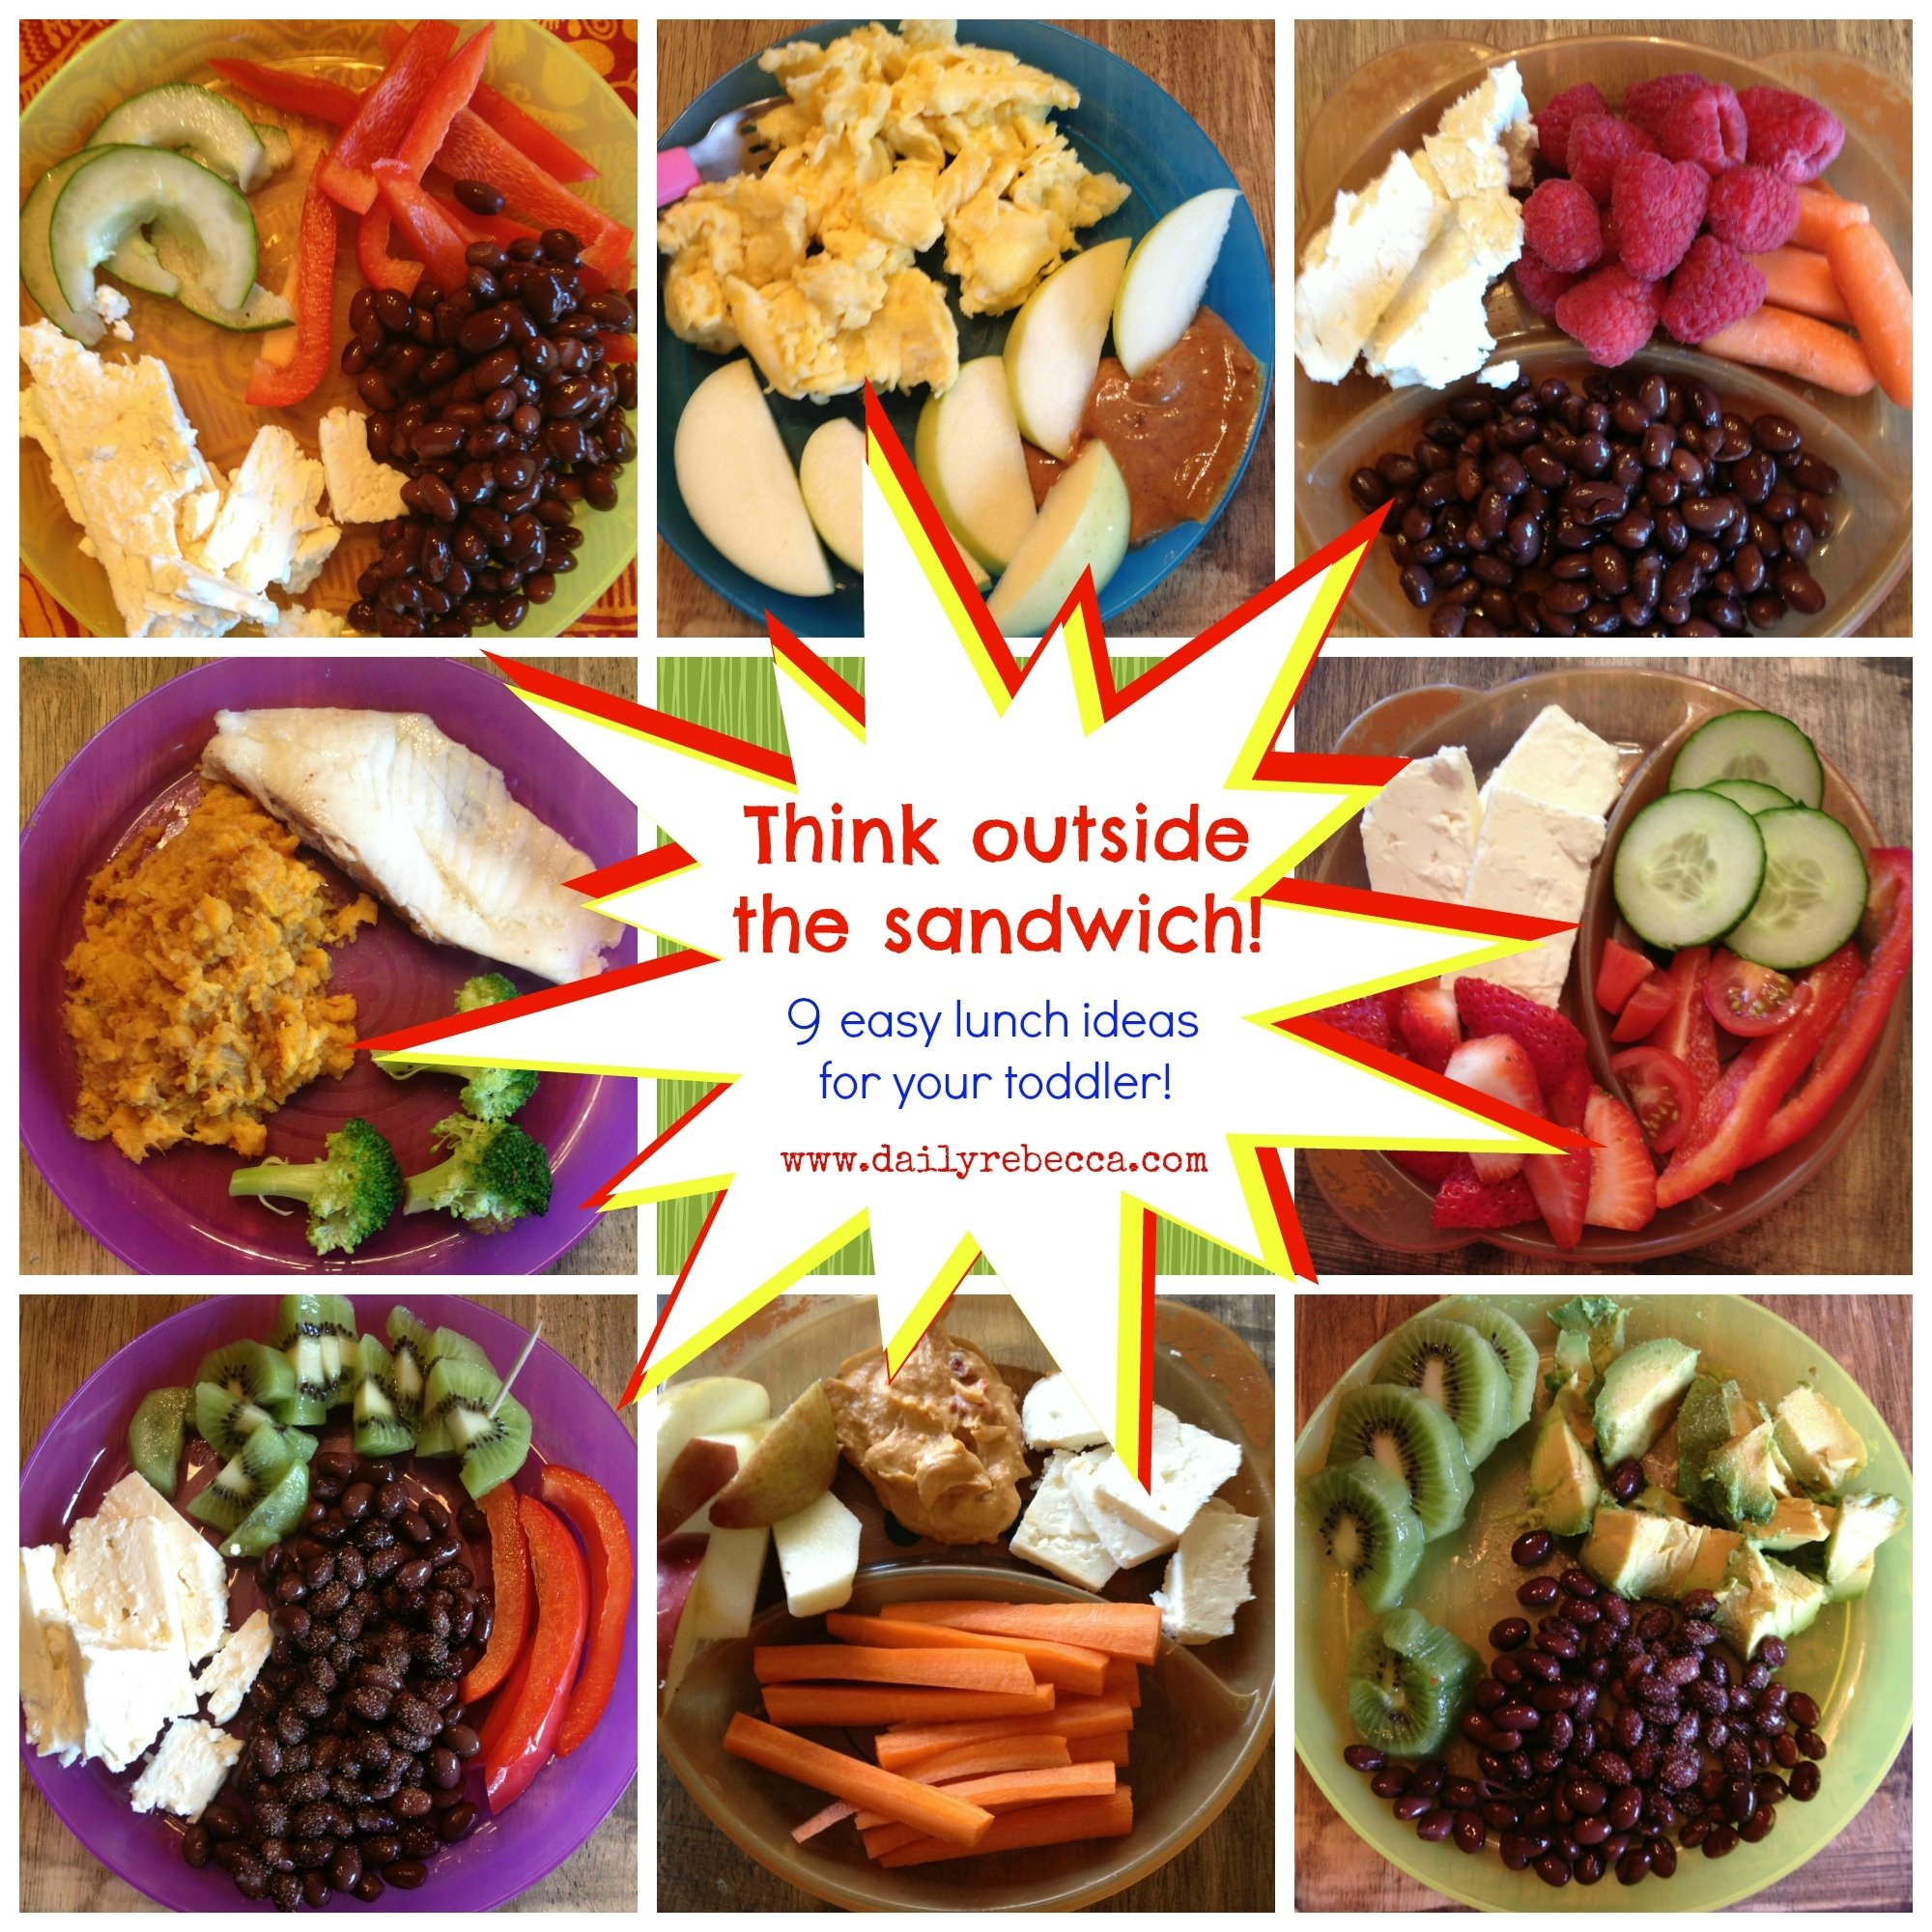 10 Stunning Healthy Meal Ideas For Toddlers think outside the sandwich 9 easy lunch ideas for your toddler 3 2021